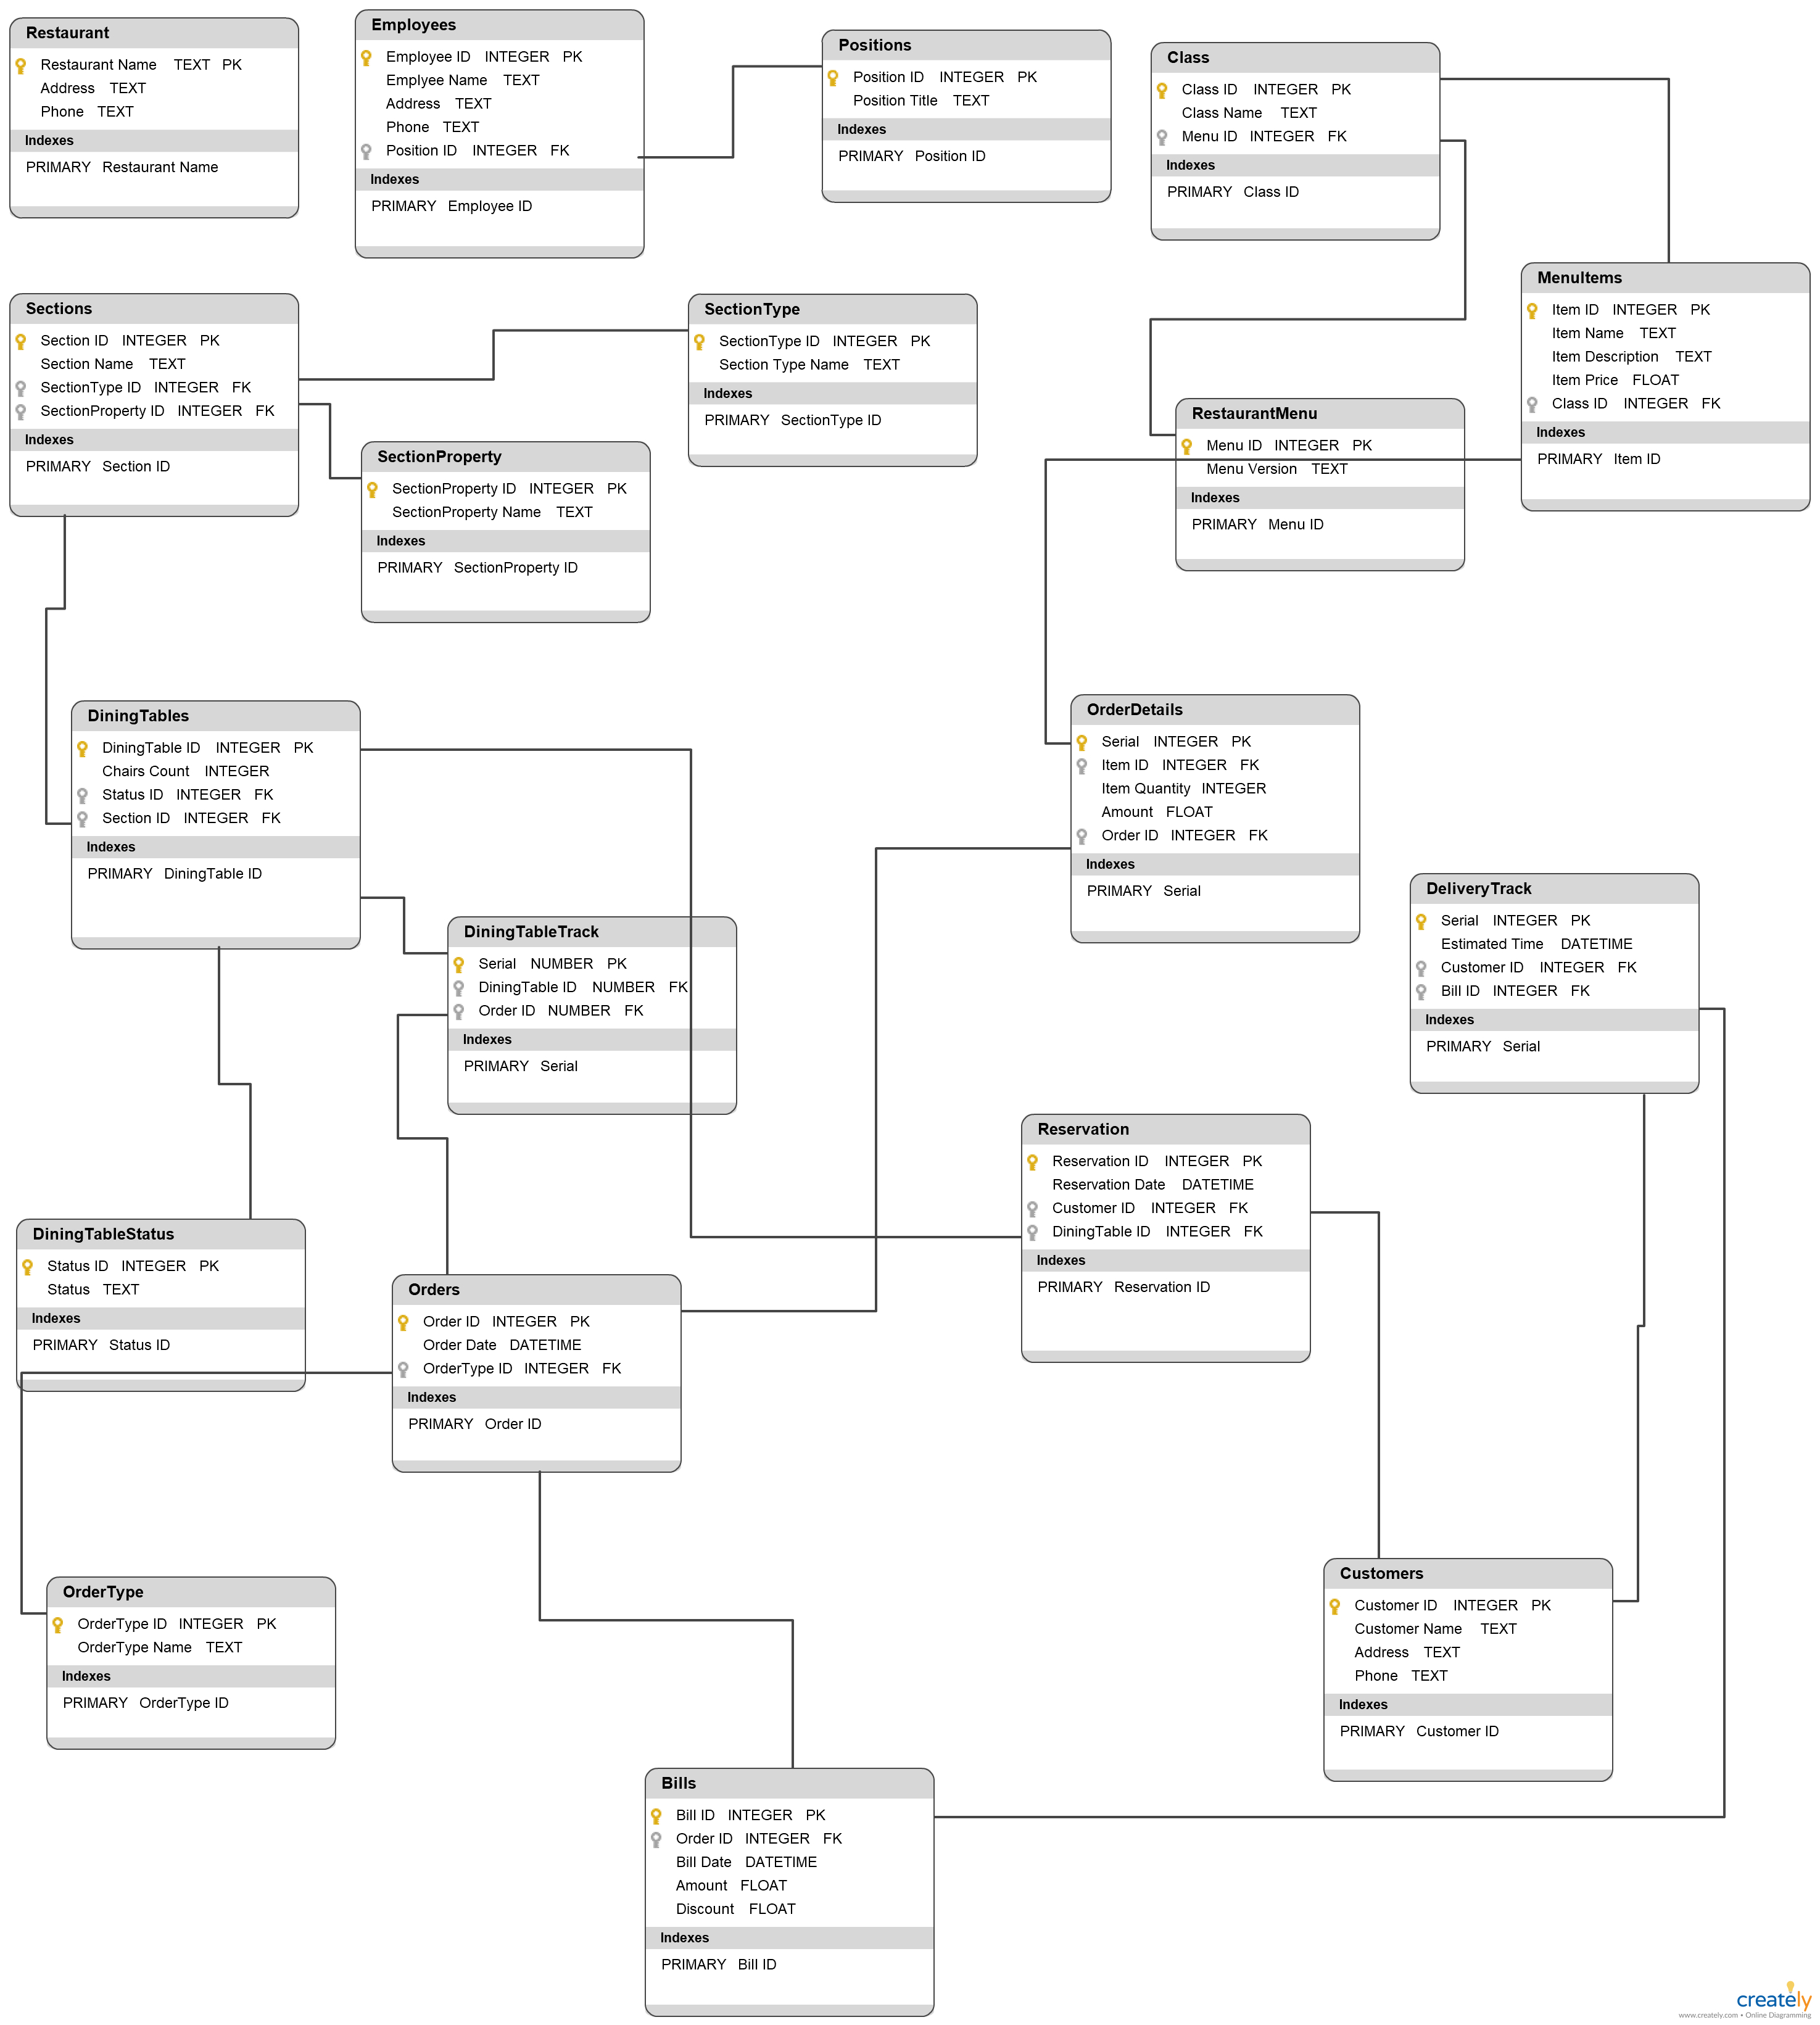 Restaurant Database Diagram - Database Diagram To Illustrate within Database Design Diagram